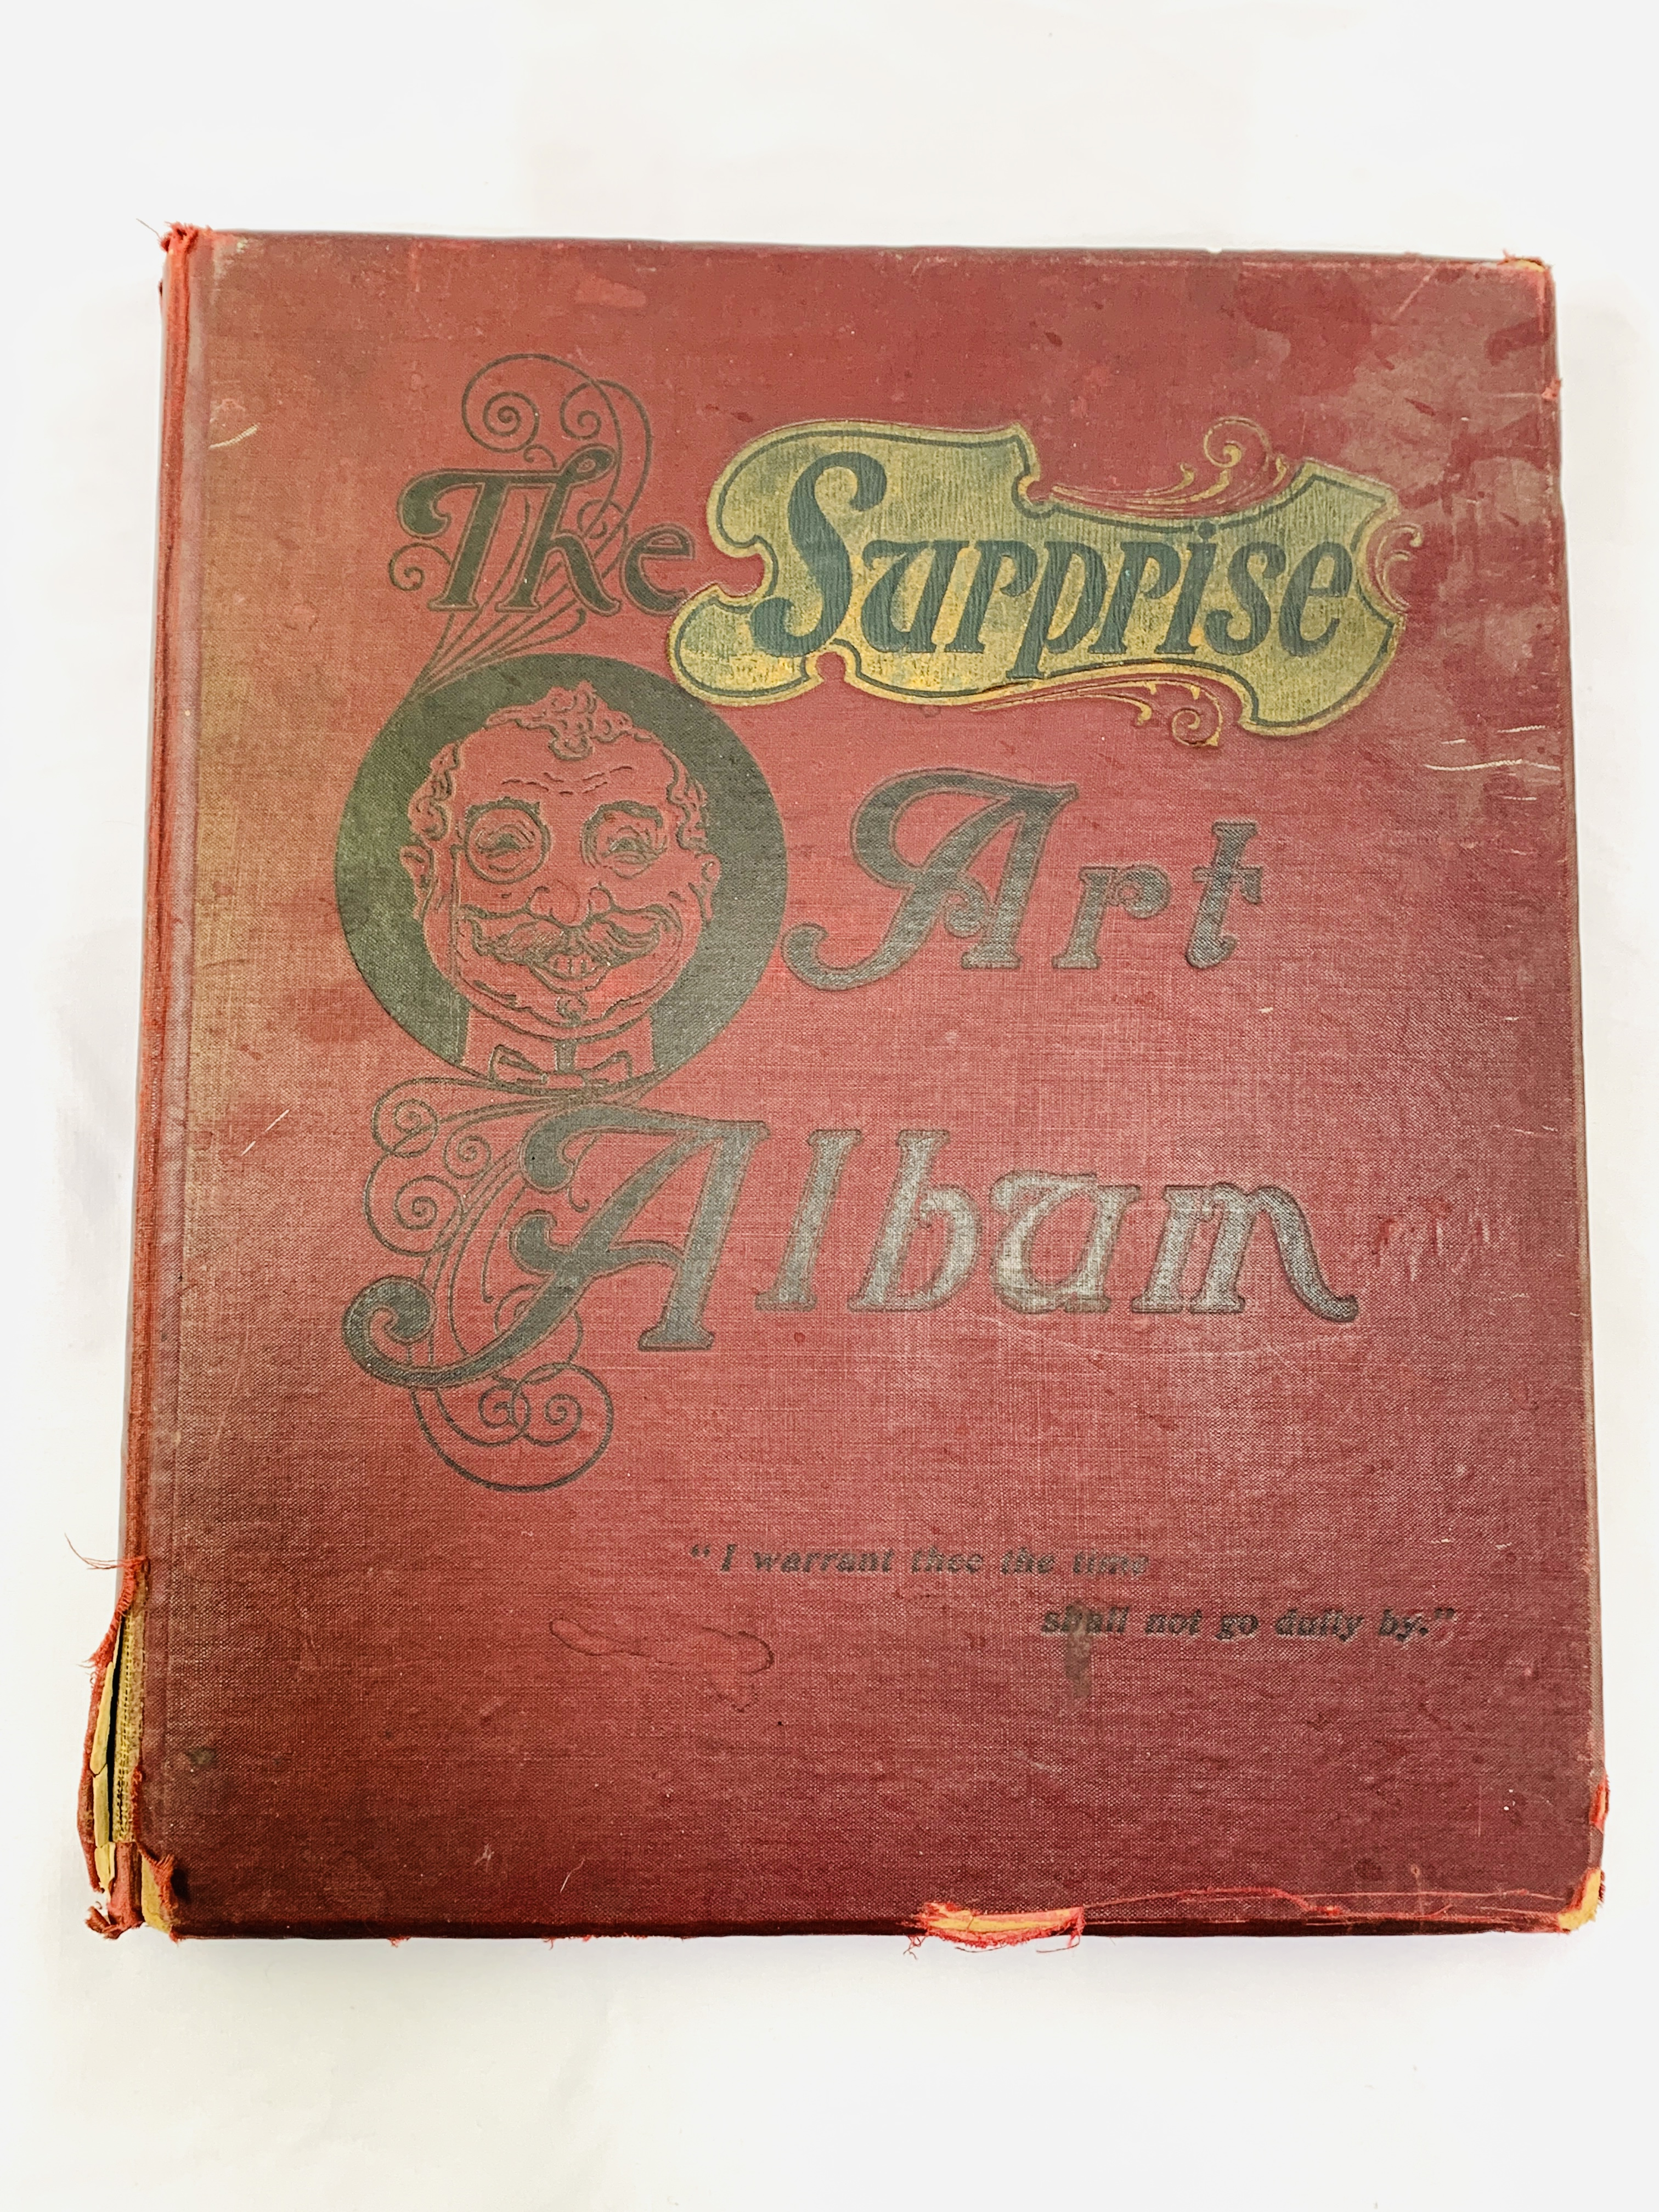 The Surprise Art Album, 2nd edition, by W. H. Soulby